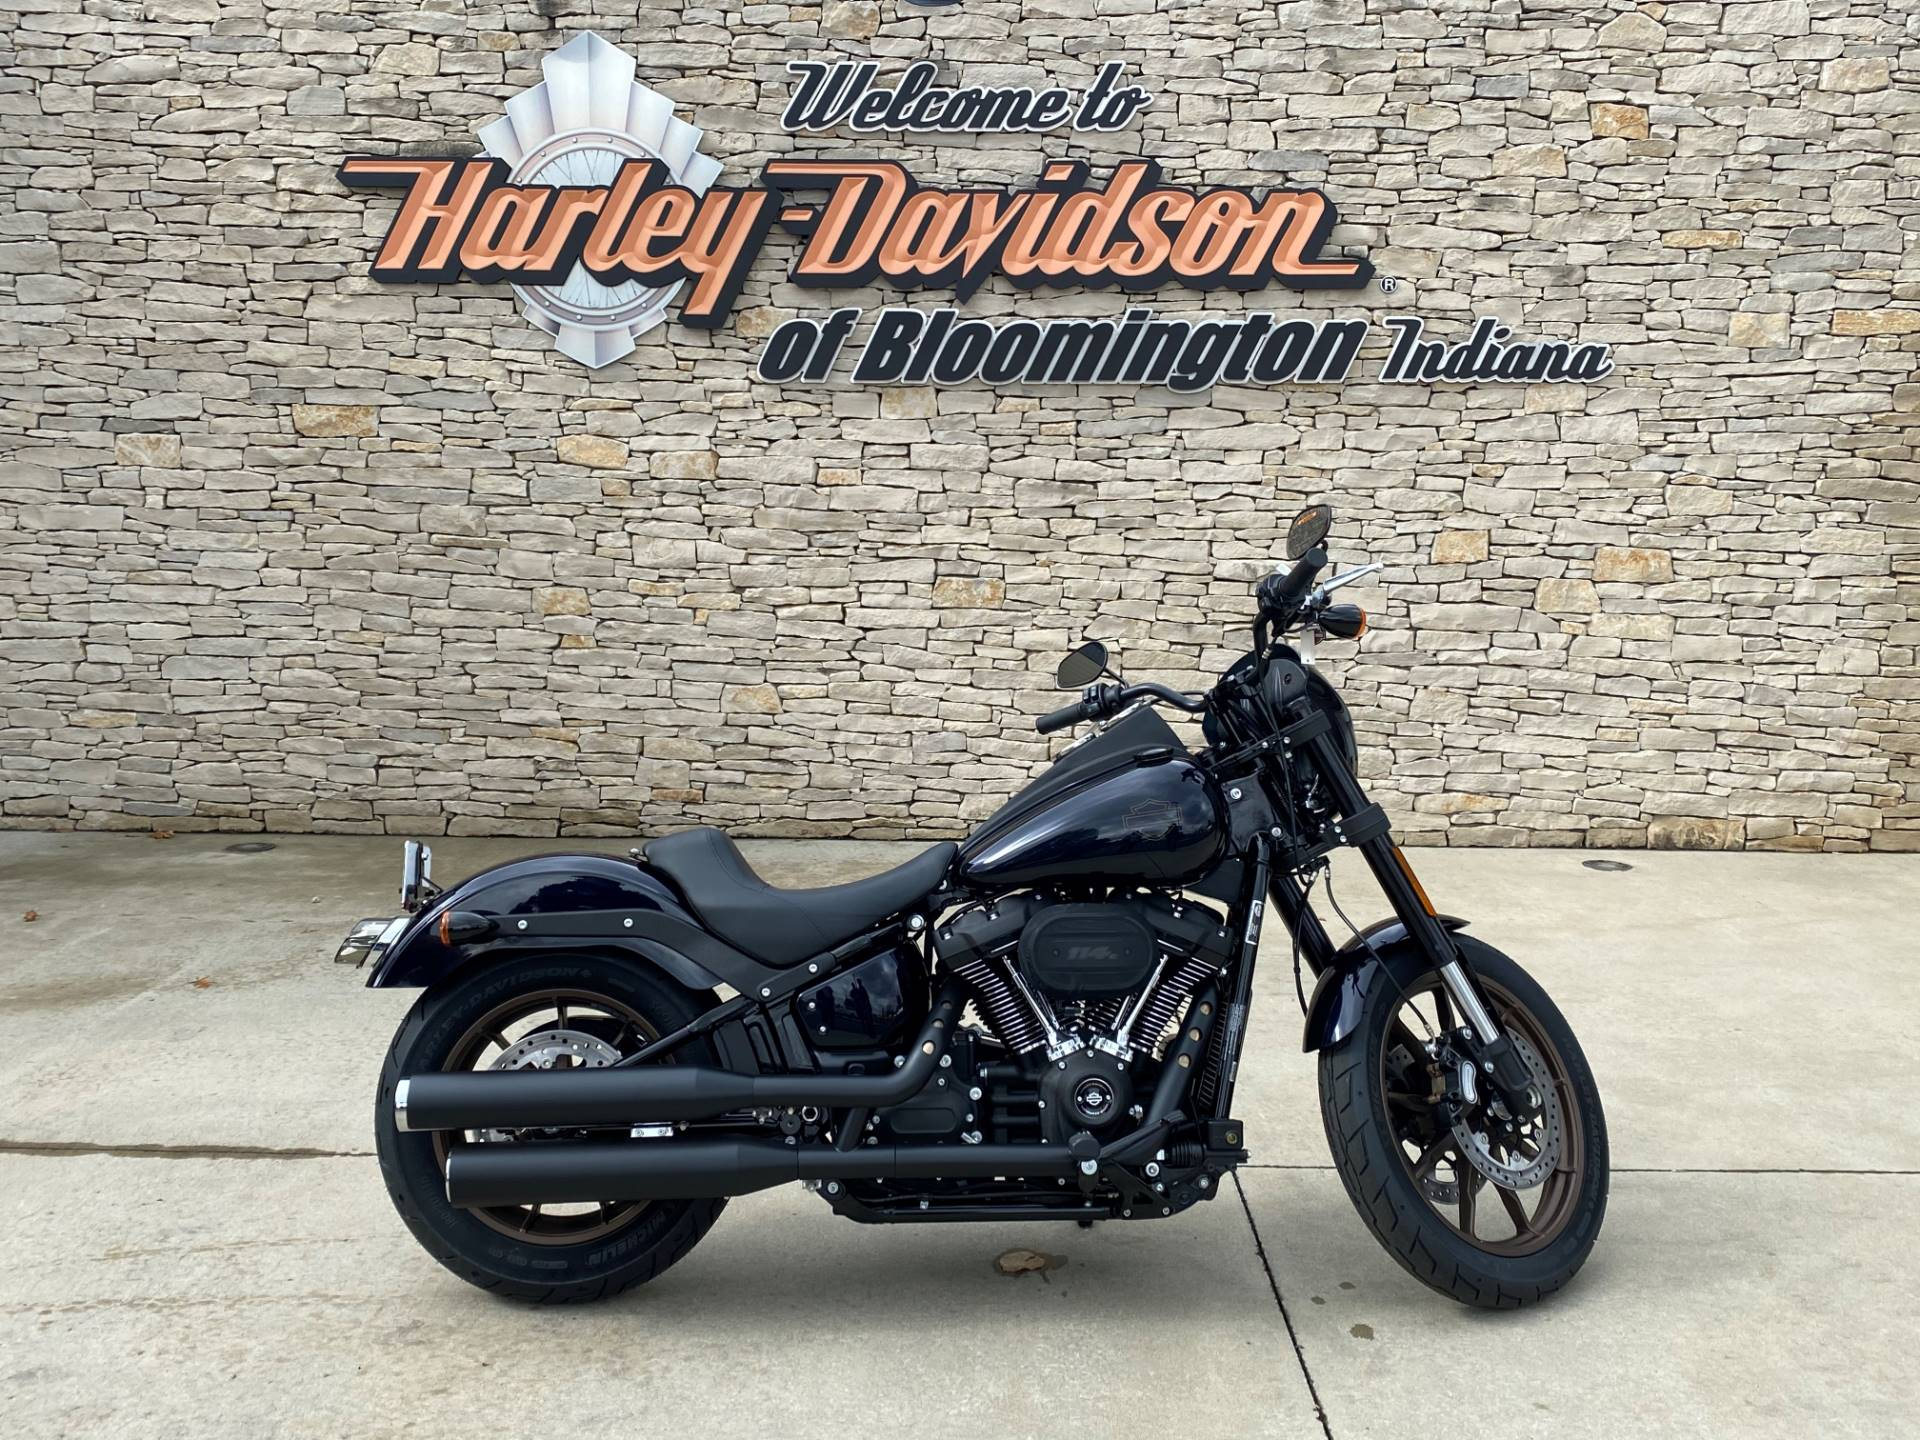 2020 Harley-Davidson Low Rider®S in Bloomington, Indiana - Photo 1